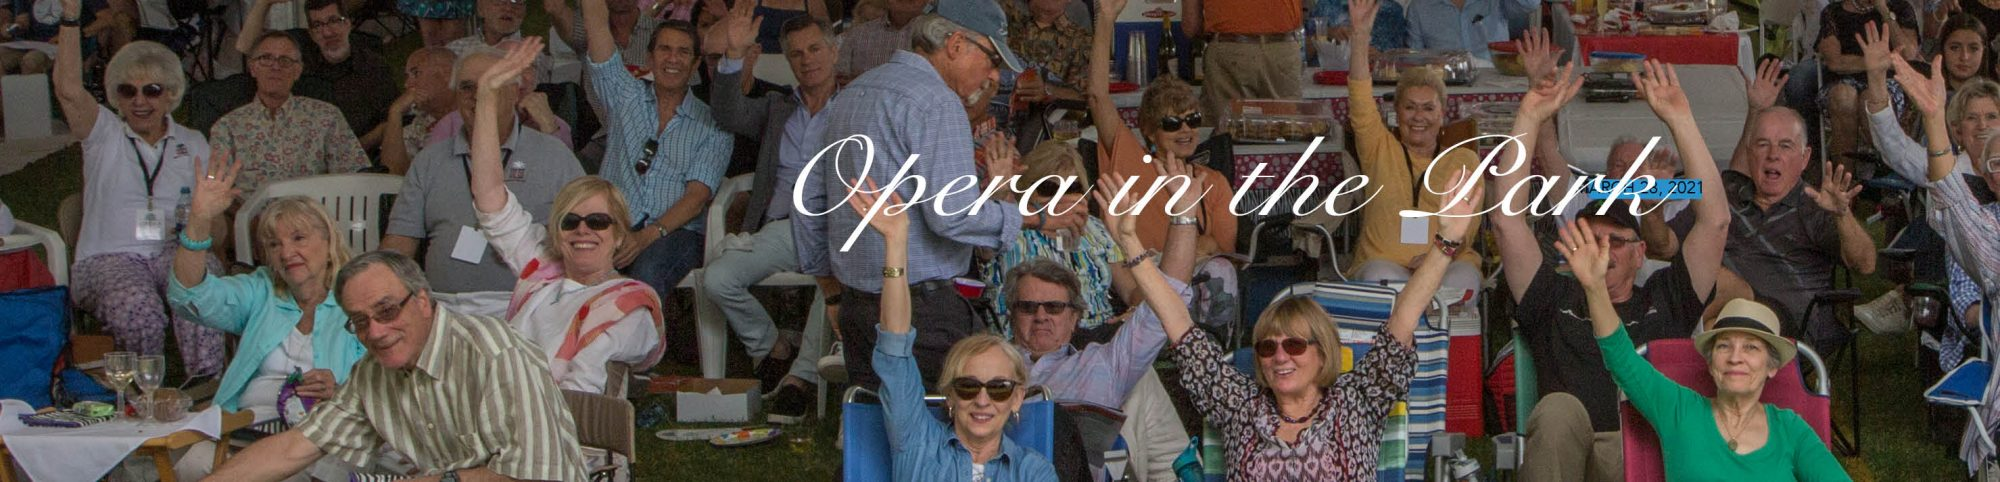 Palm Springs Opera Guild